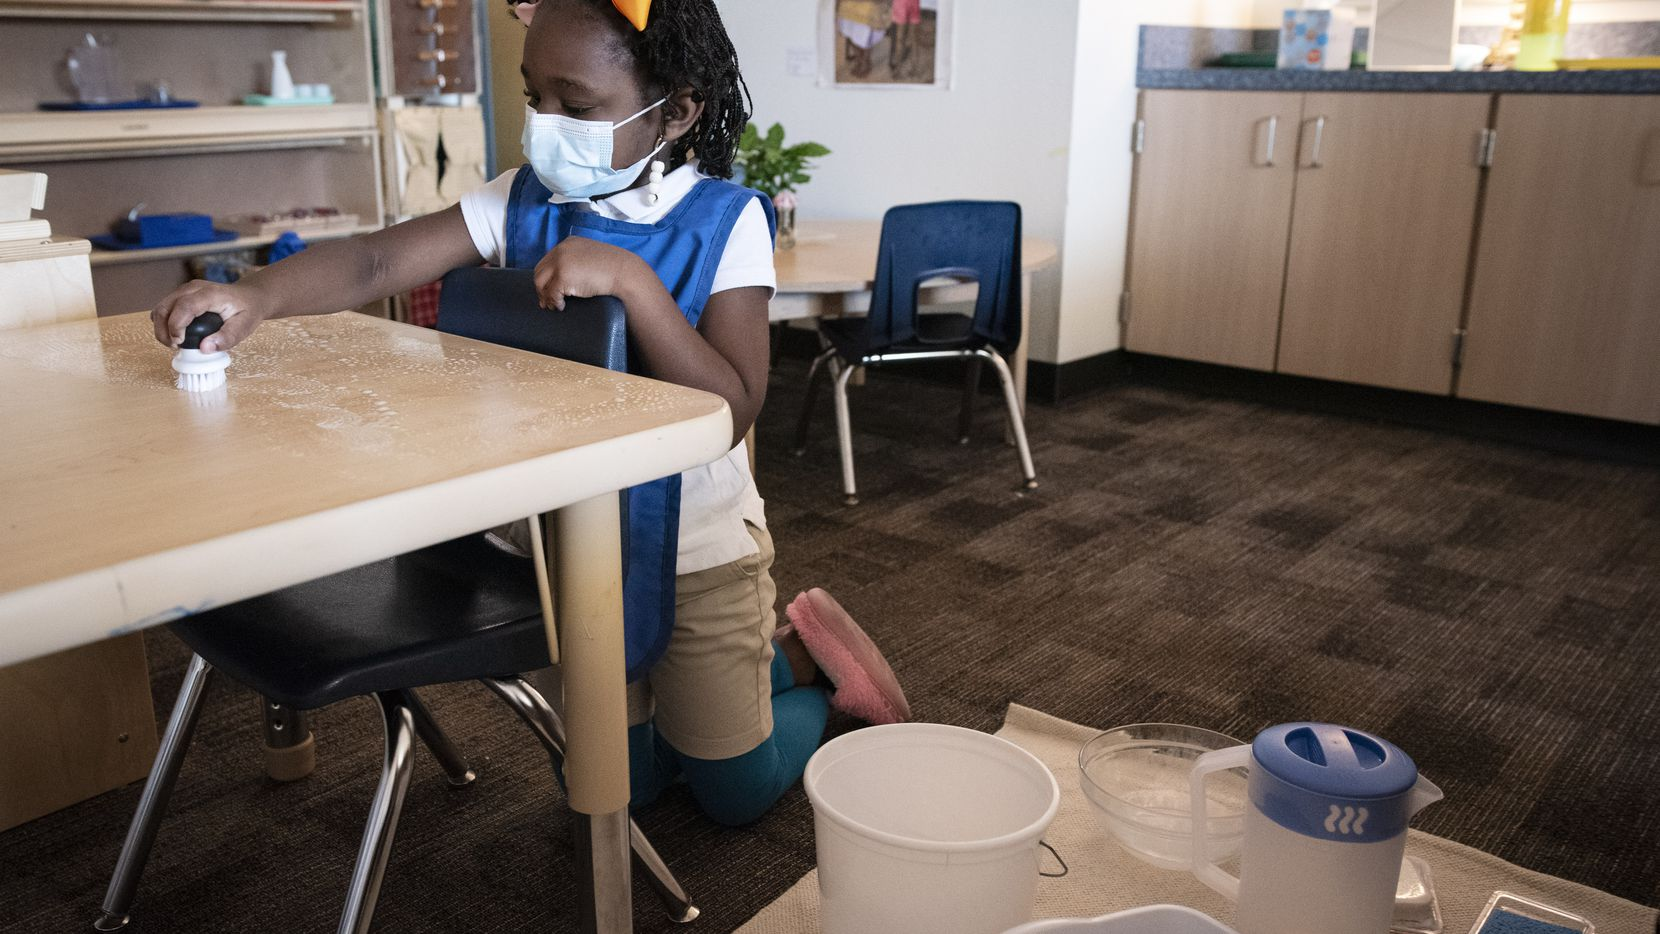 Primary student Erin Choice scrubs a table with soap as she works on practical life skills such as independence, order, process and organization, part of the Montessori program at Lake Ridge Elementary in Cedar Hill, on Wednesday, Nov. 18, 2020.